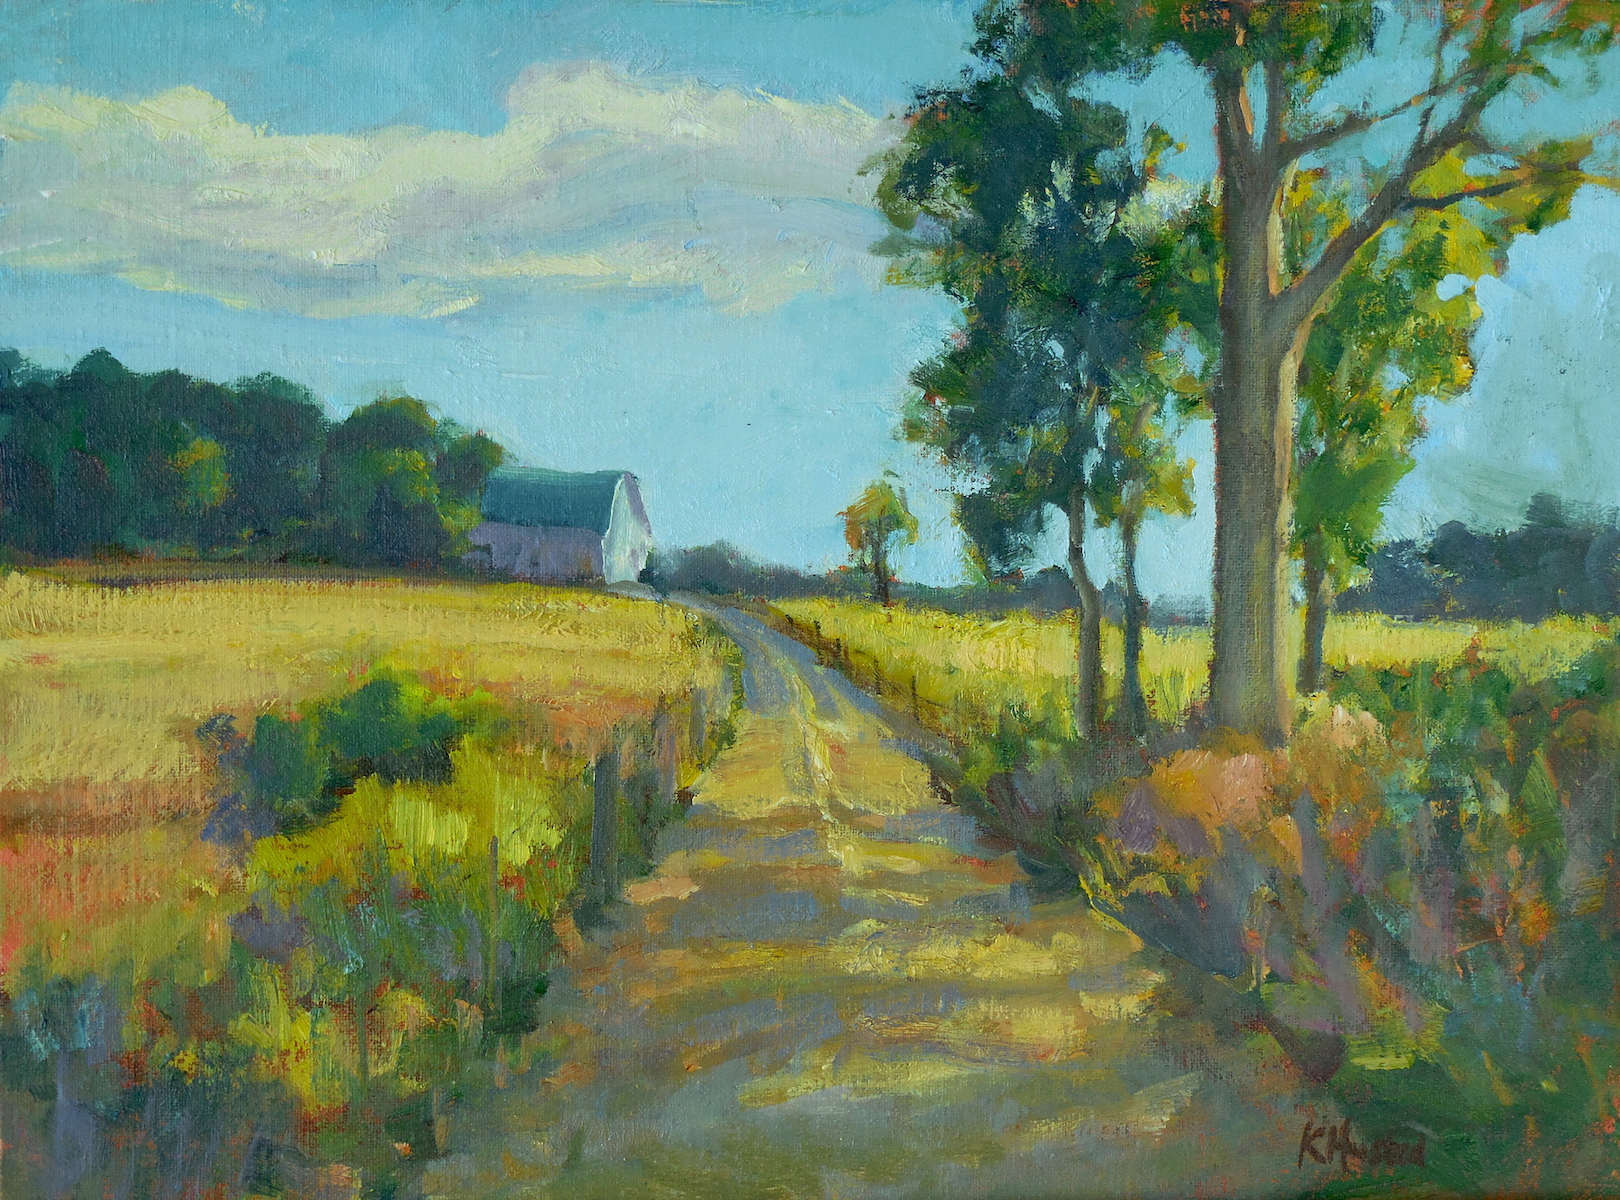 Road to the barn 12x16